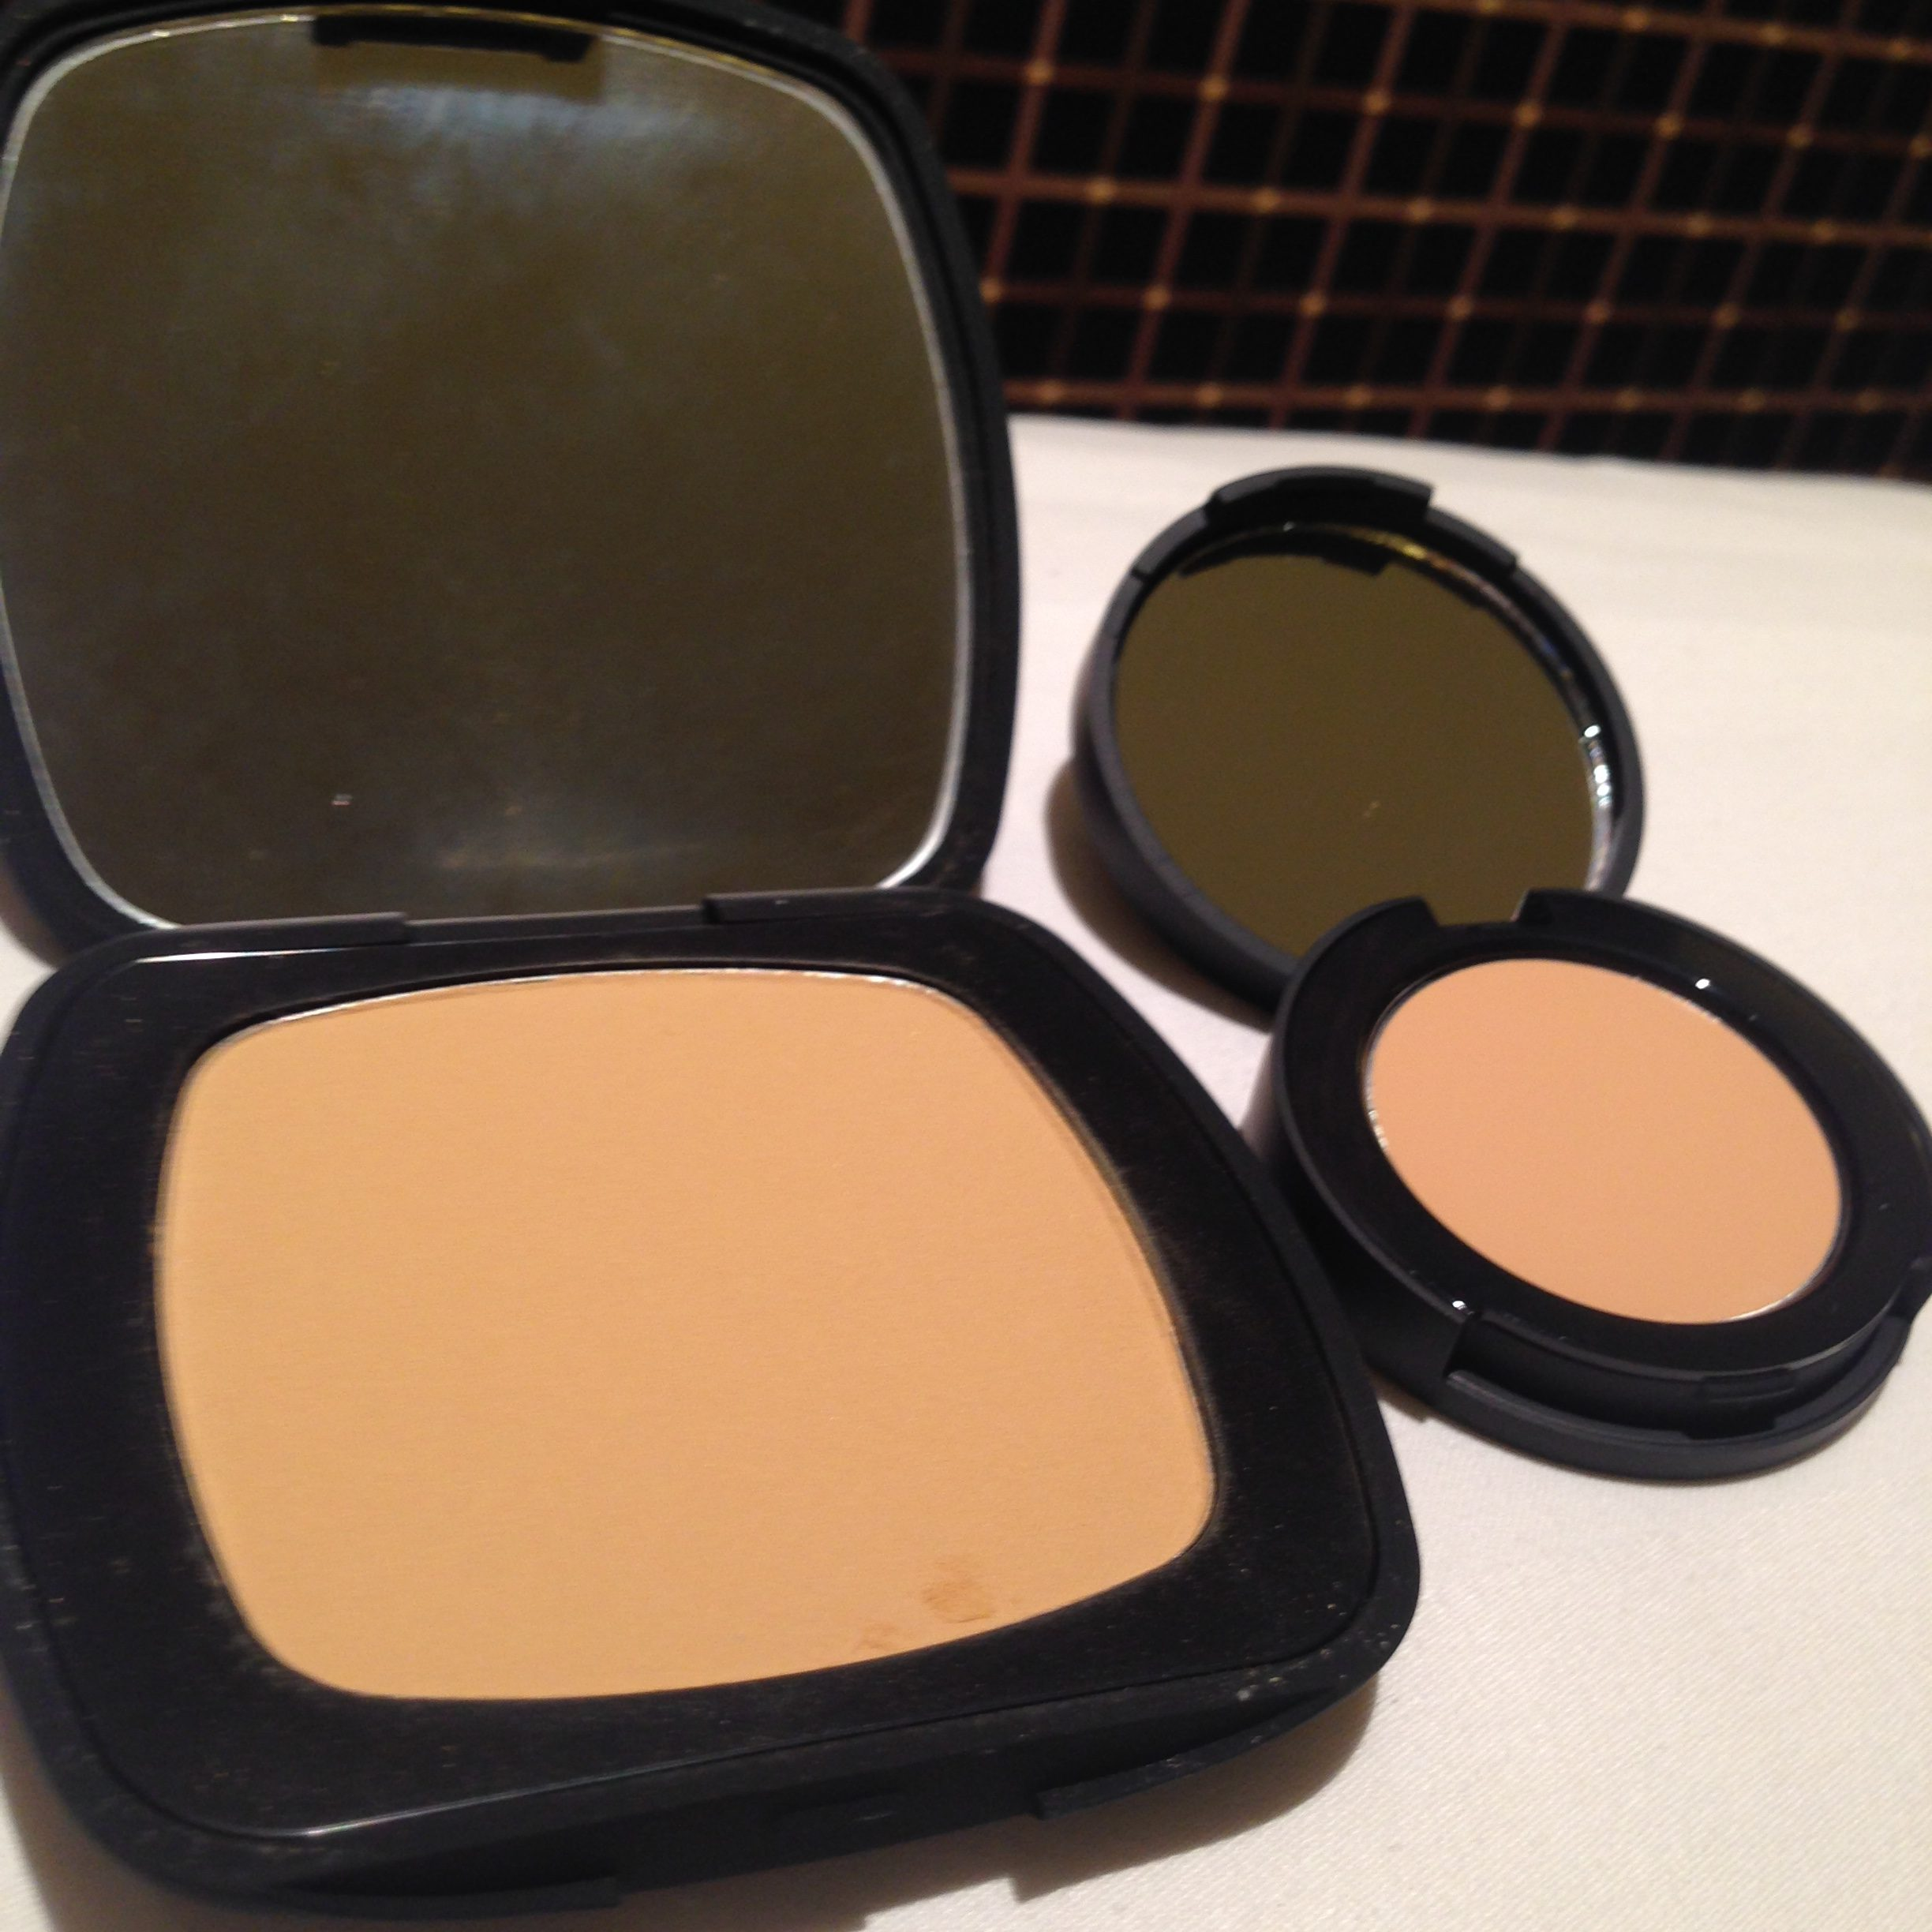 it's a match! bareMinerals READY in R230 and bareMinerals concealer in Light 2